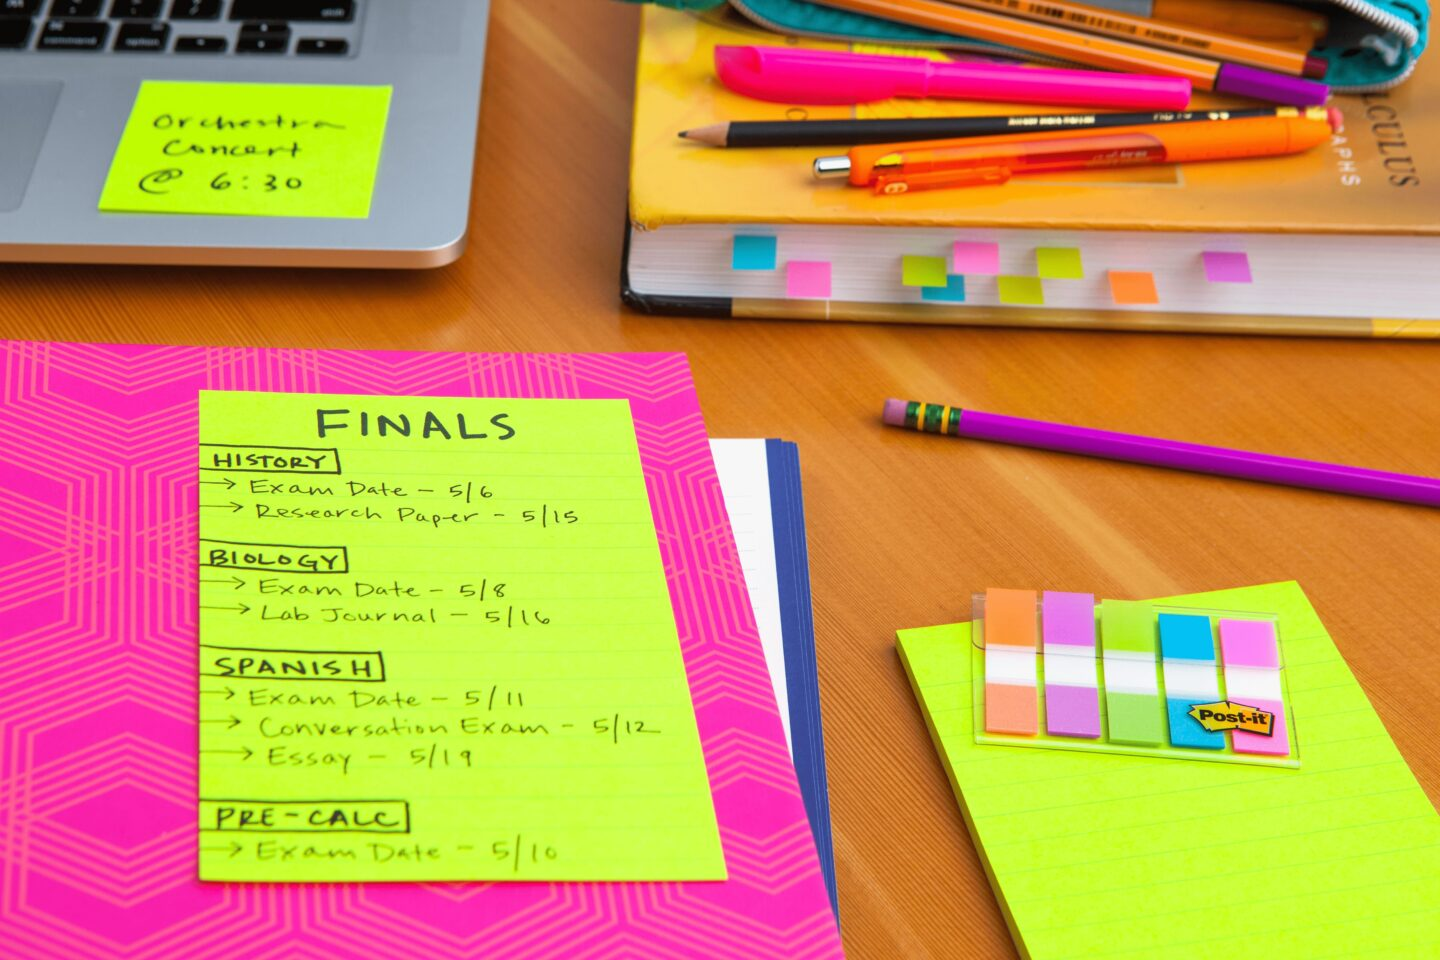 How Can You Create an Effective Study Space?